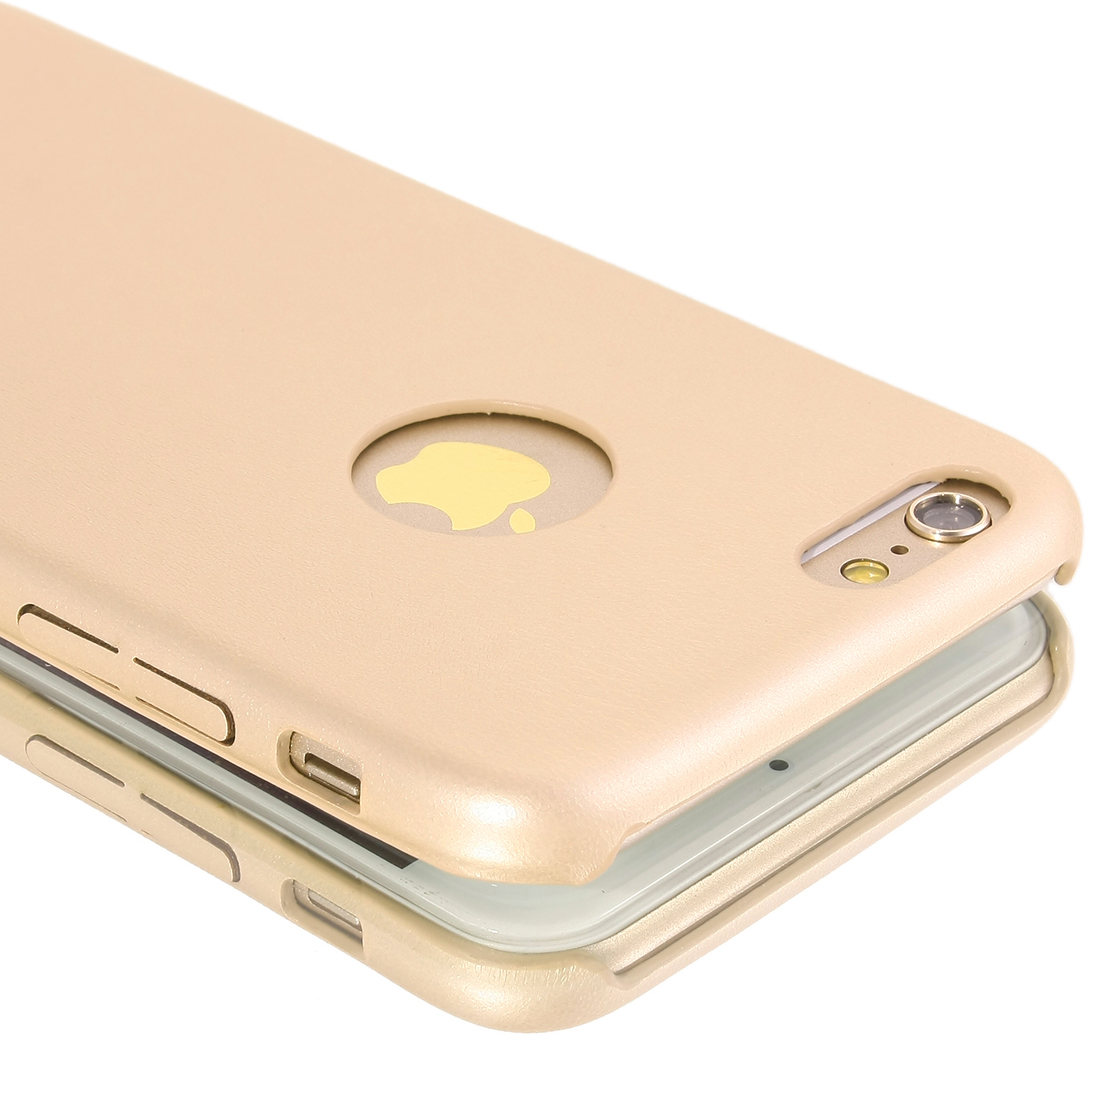 "New Luxury PU Leather Ultra-thin Case Cover For Apple iPhone 6 4.7"" Gold tone"